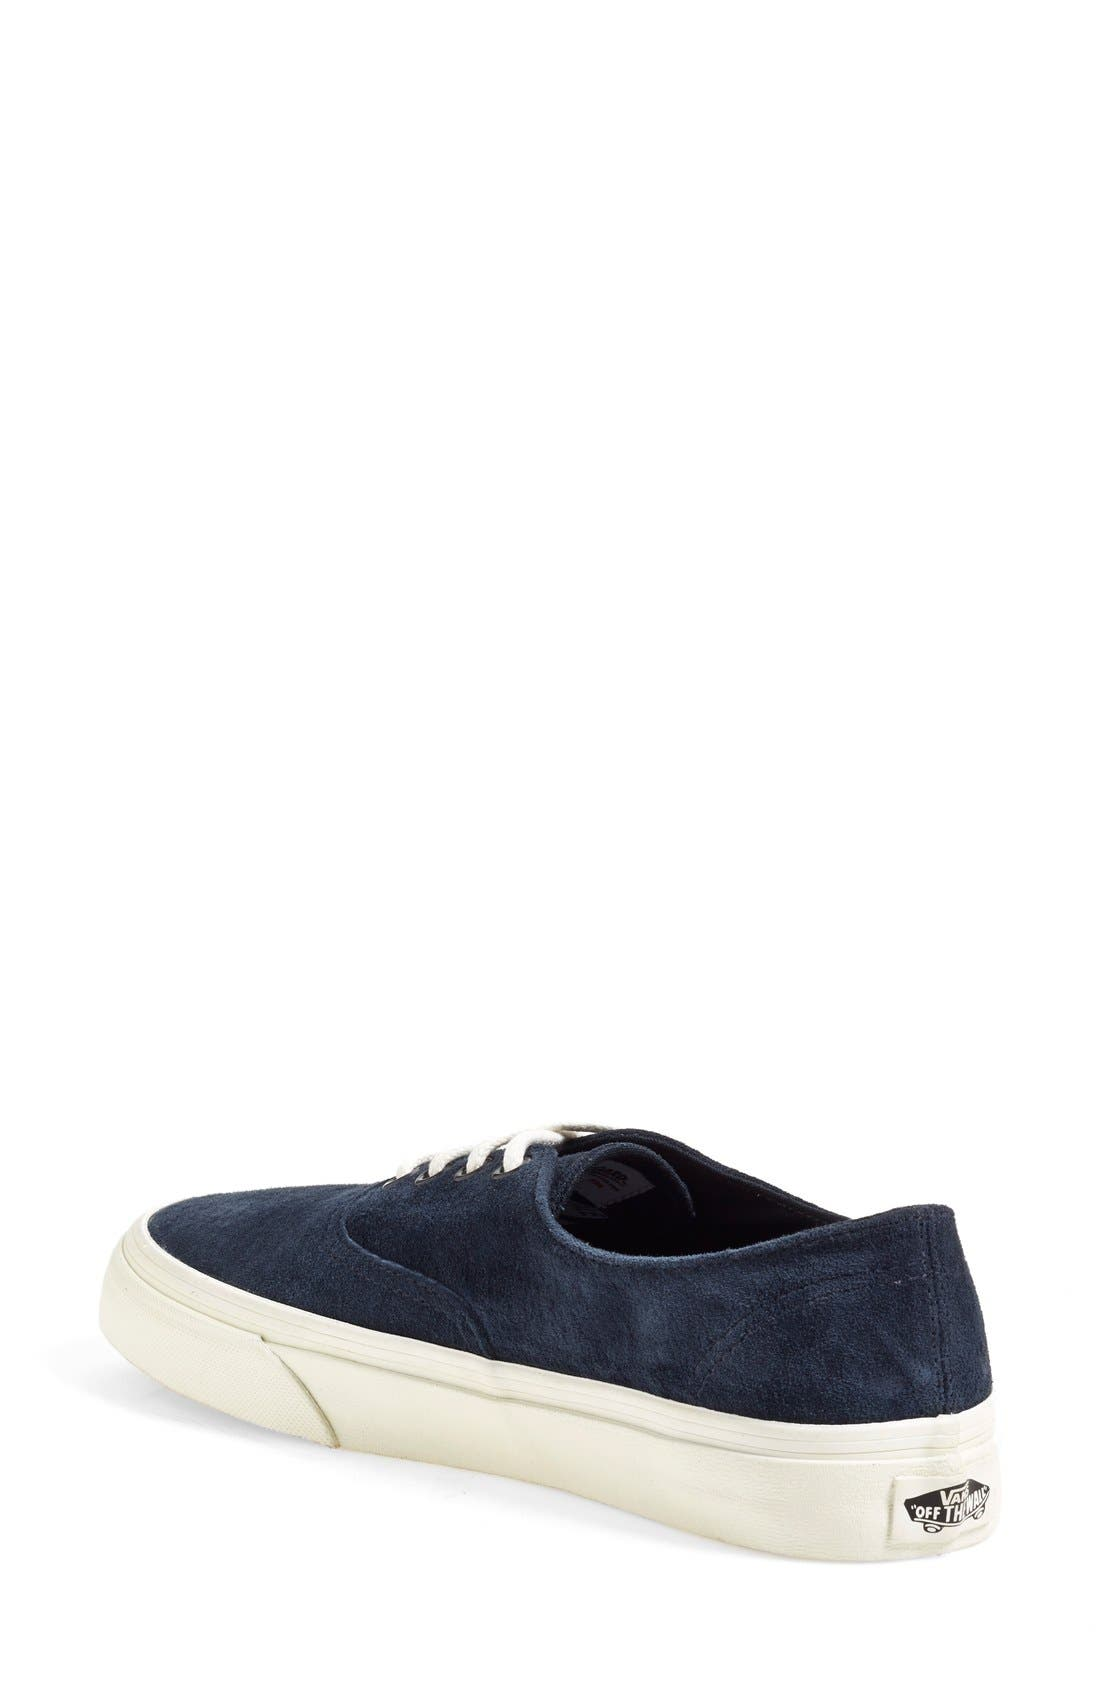 Alternate Image 2  - Vans 'Authentic - Era Decon CA' Sneaker (Women)